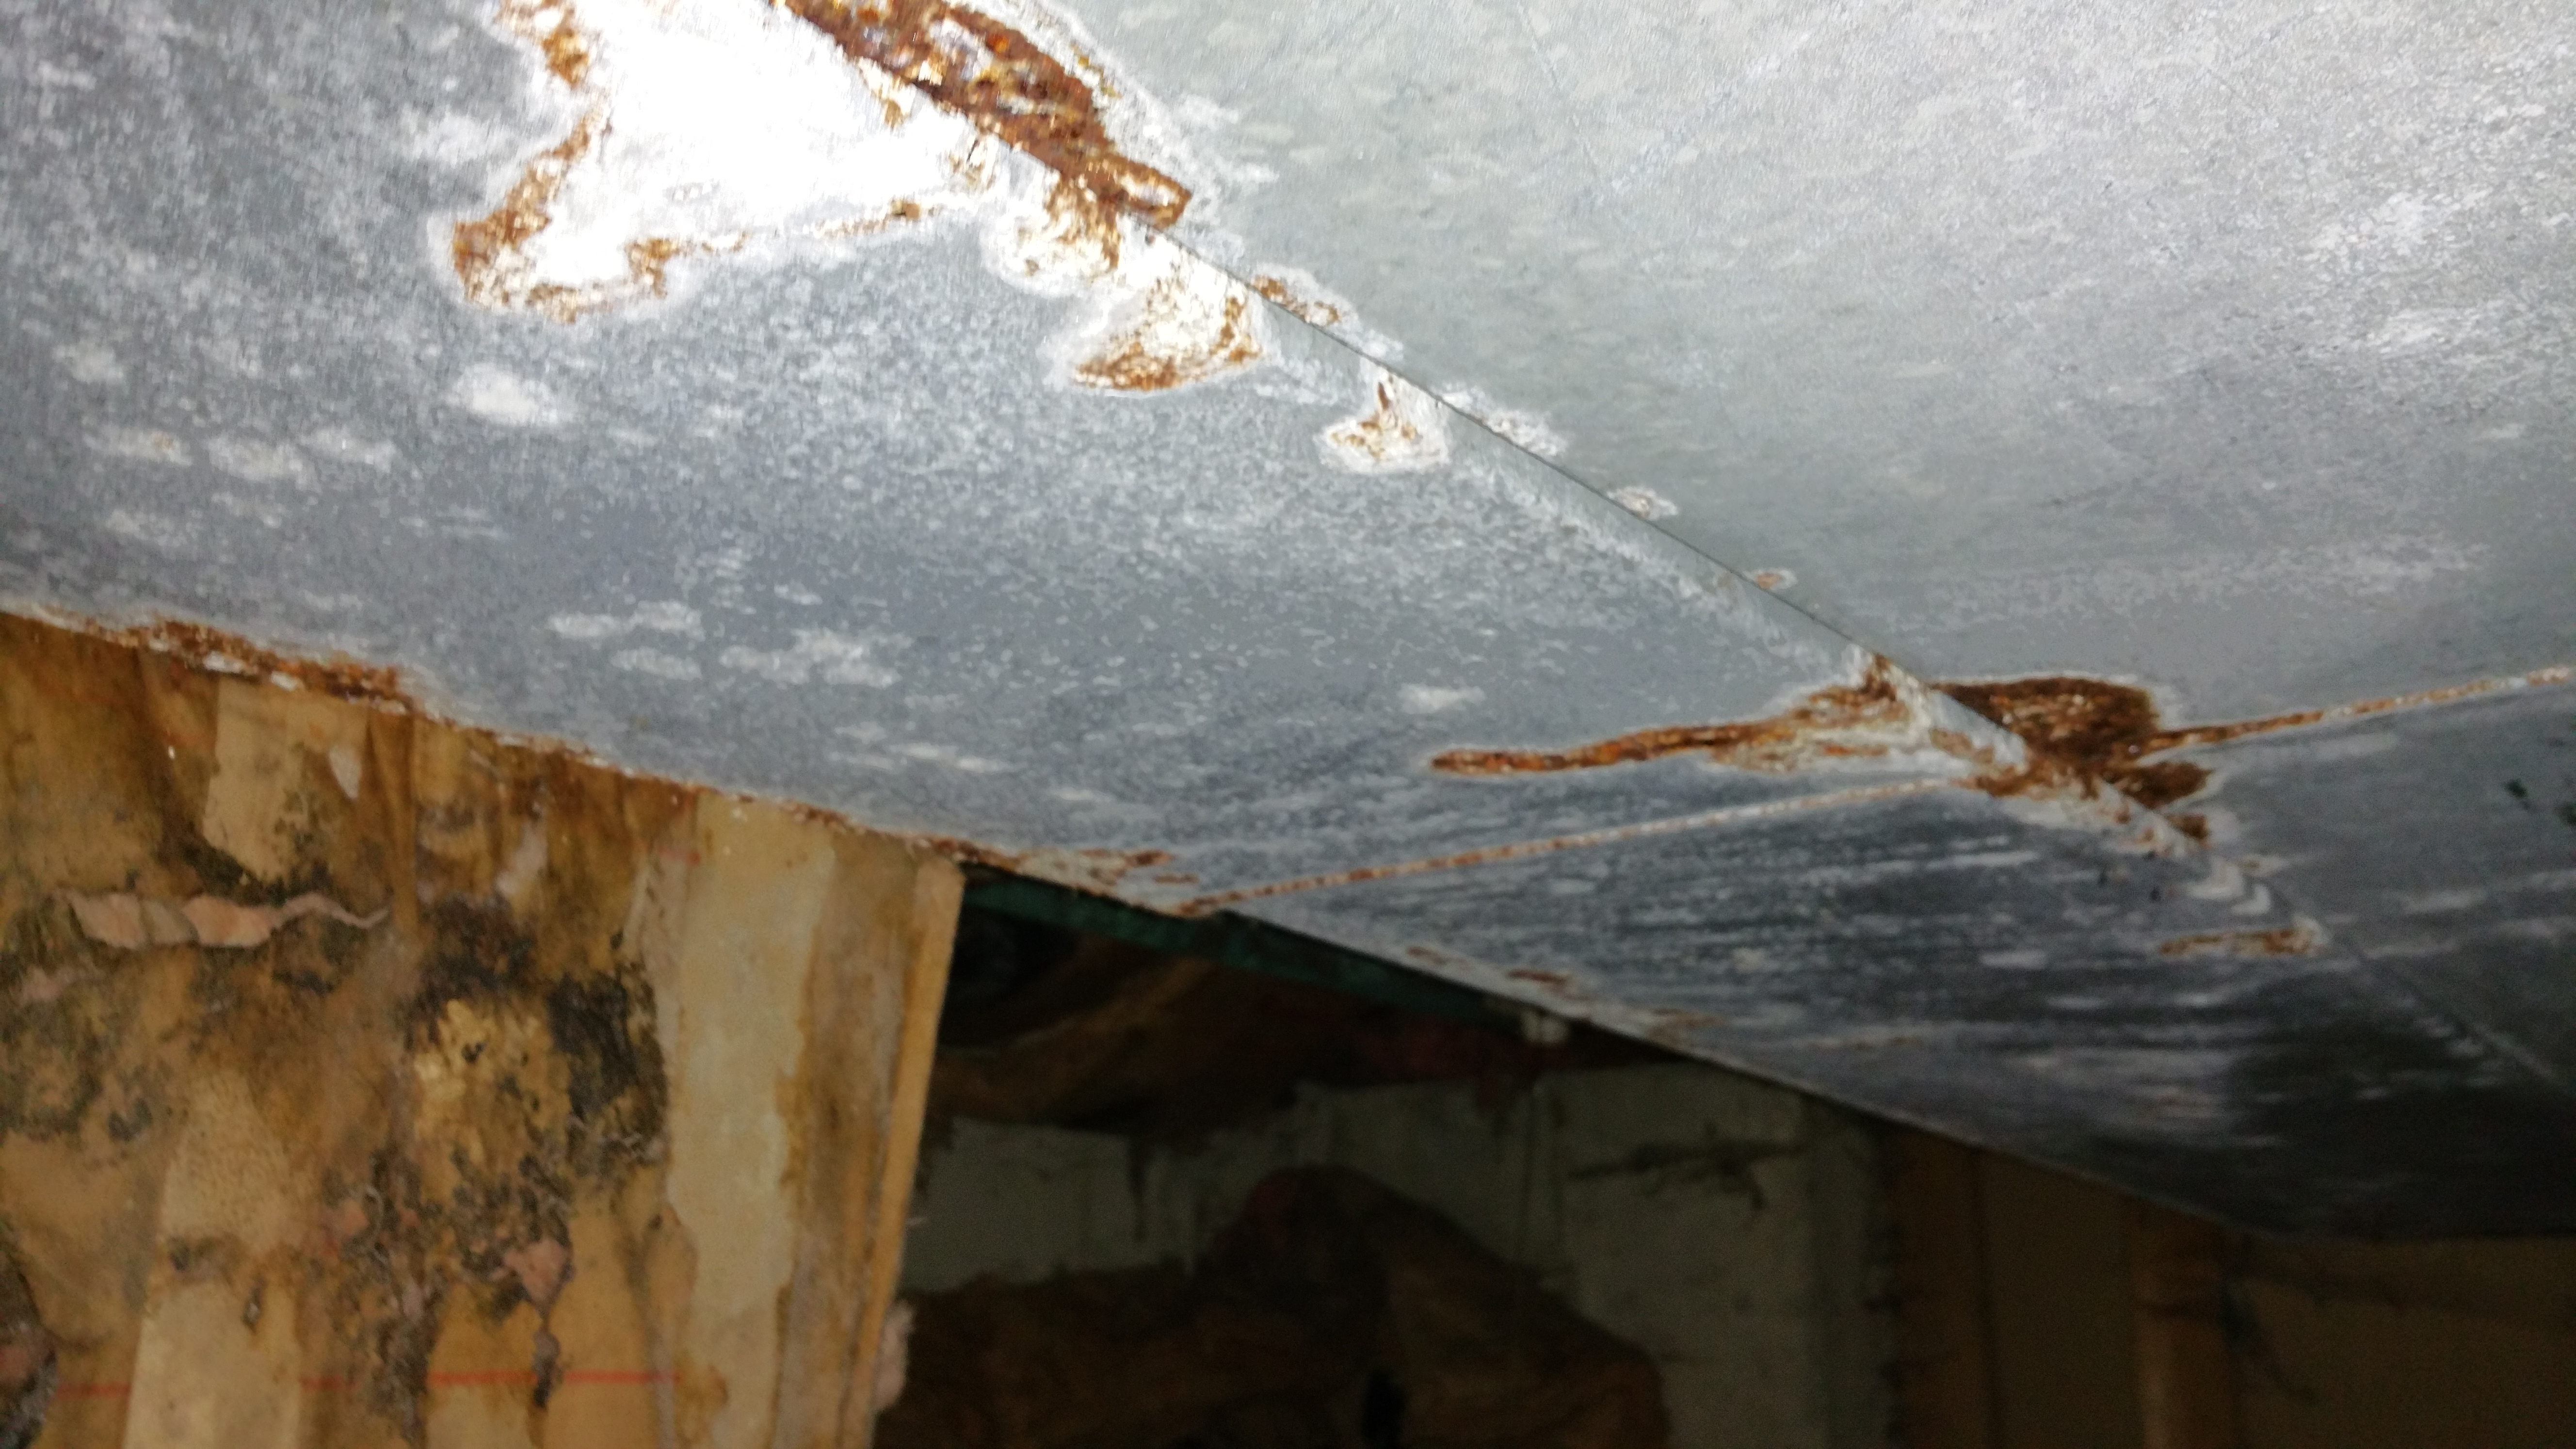 Rusted ductwork